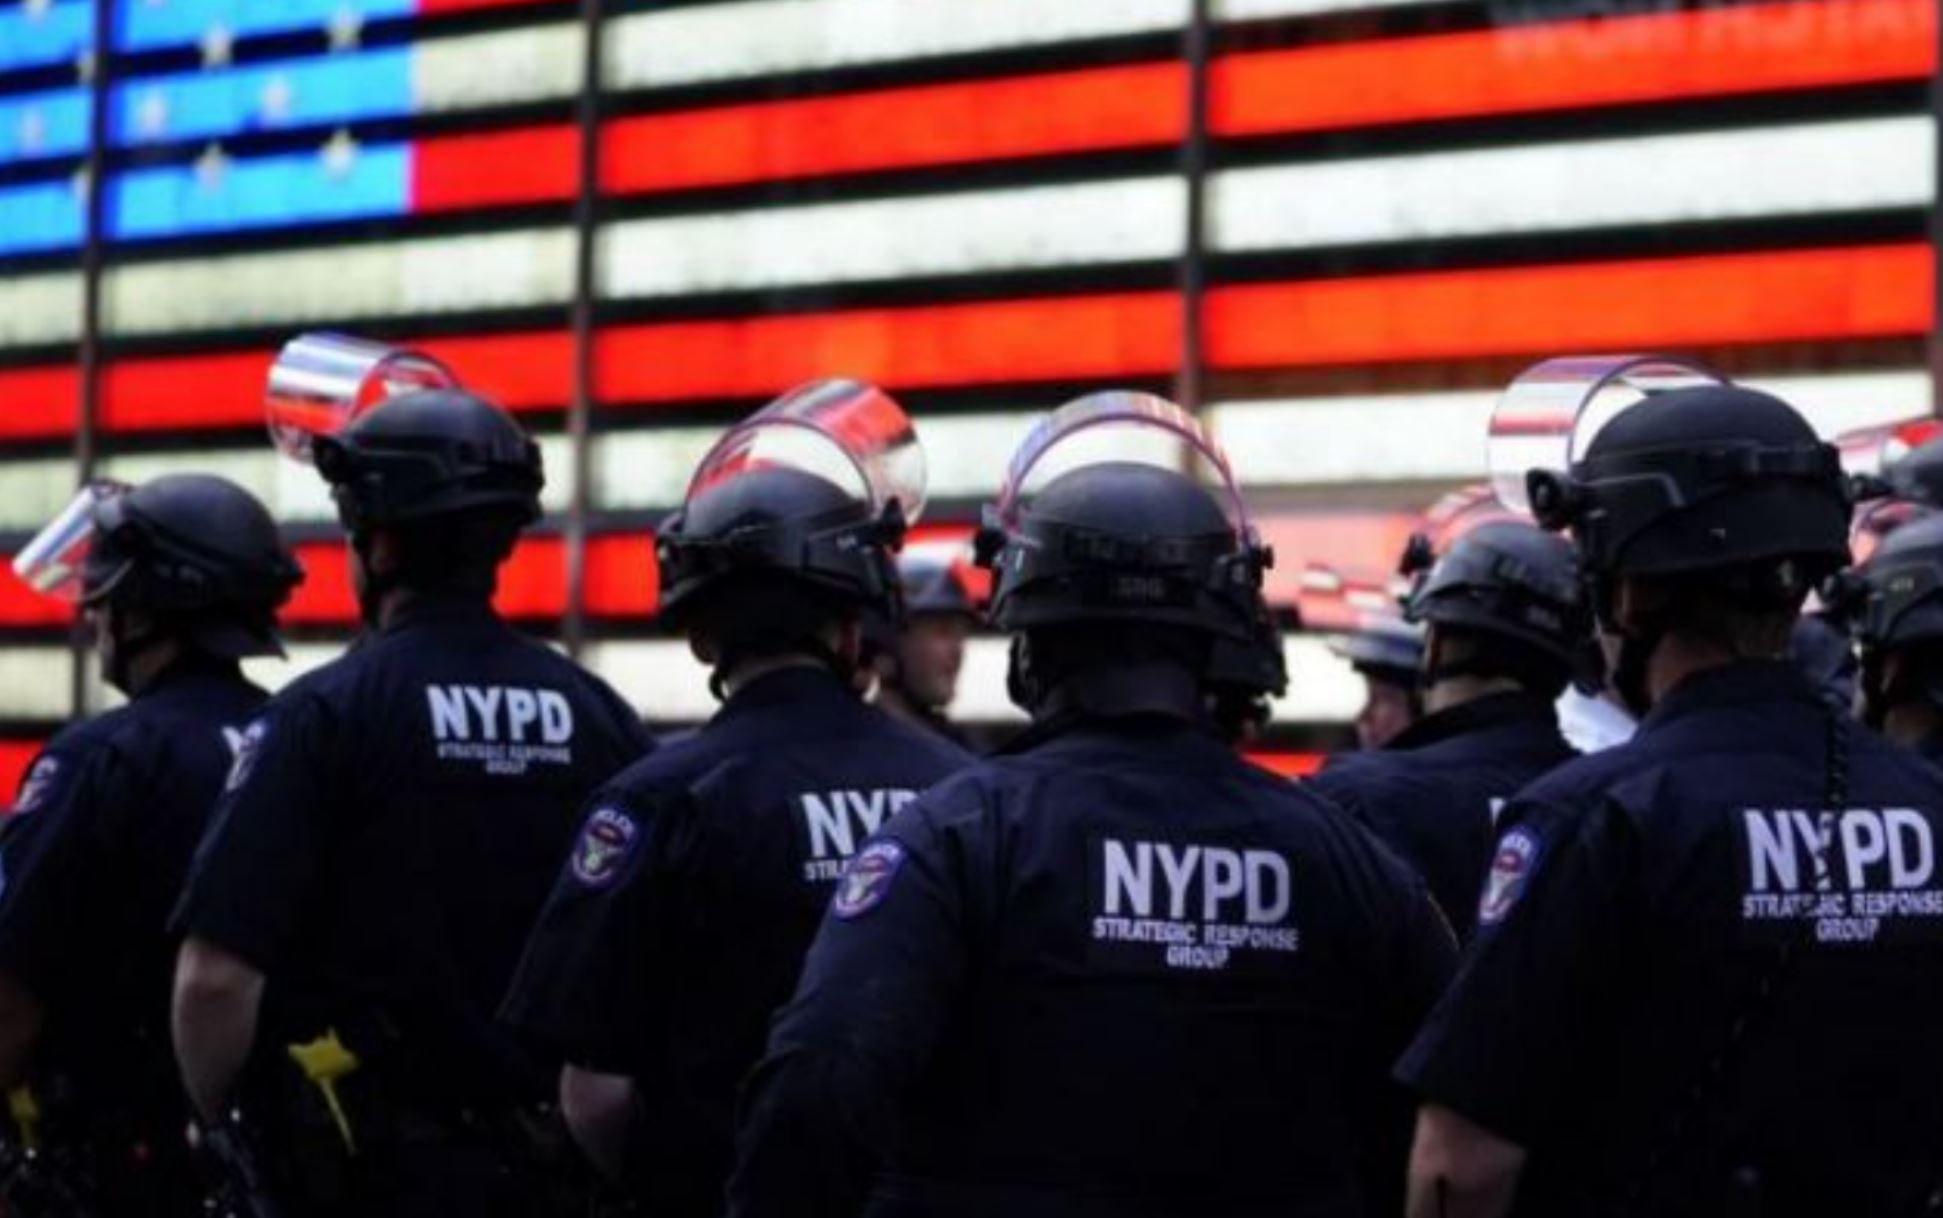 NYC to Experiment Responding to Some Calls With Mental Health Workers Instead of Police